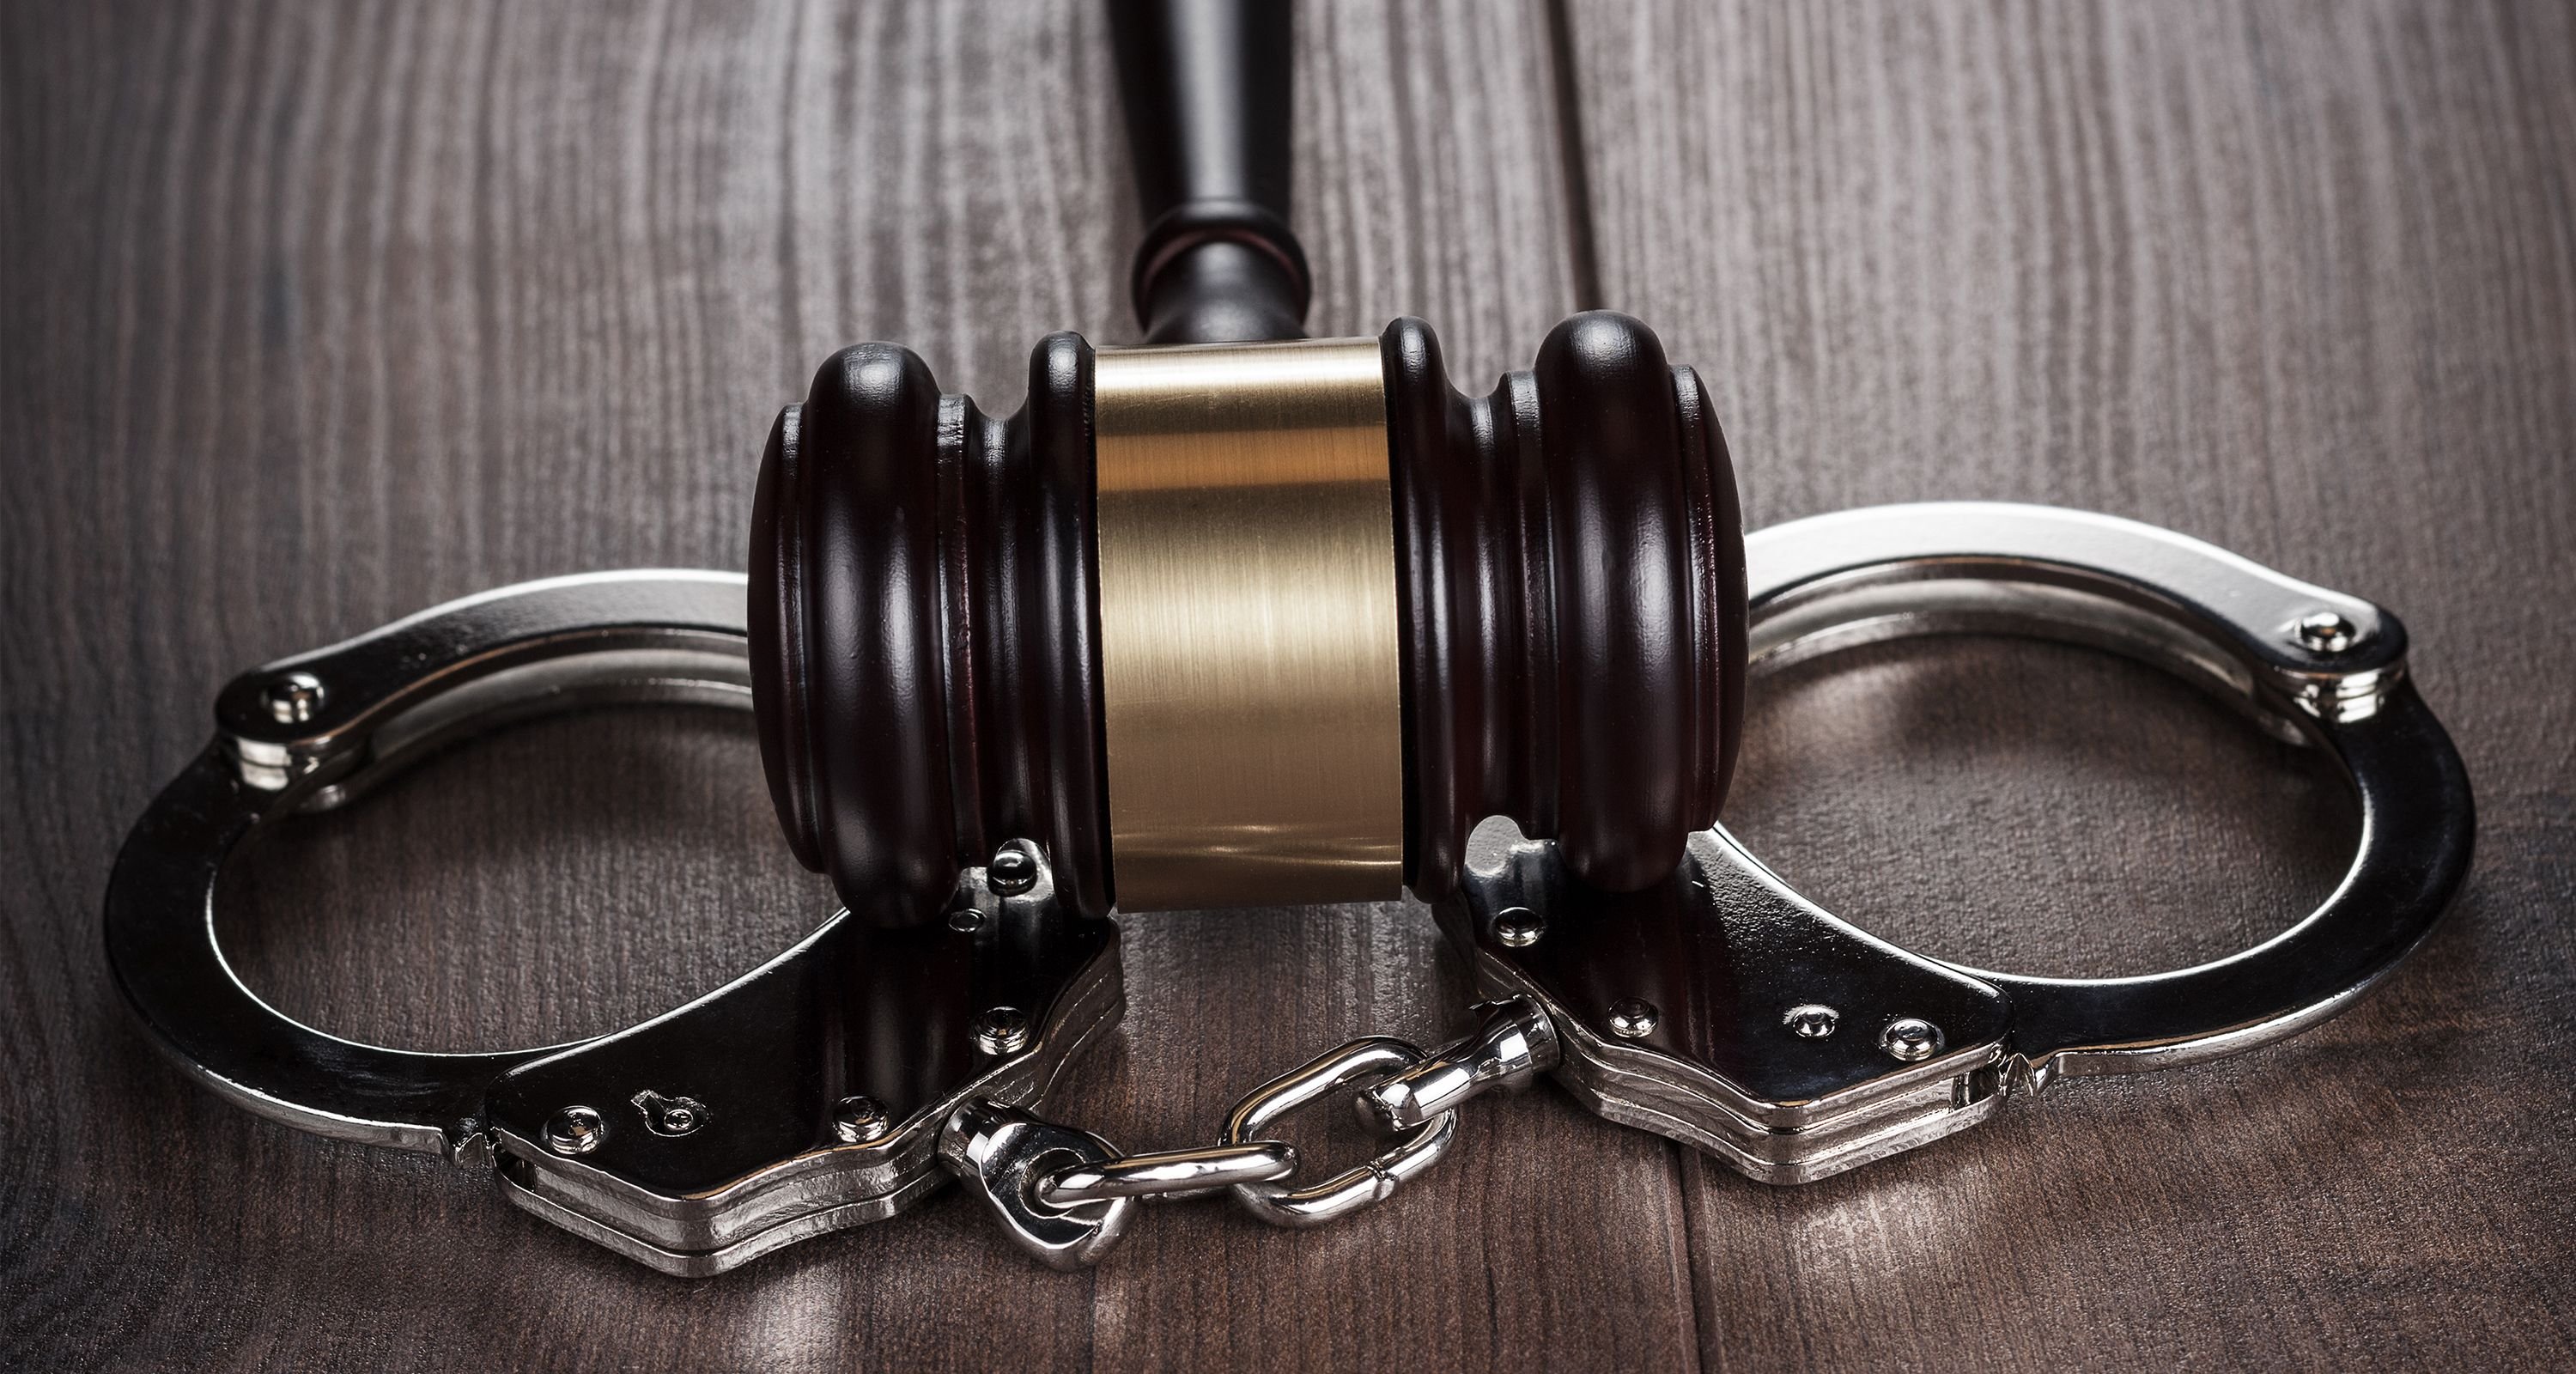 Choosing Criminal Defense